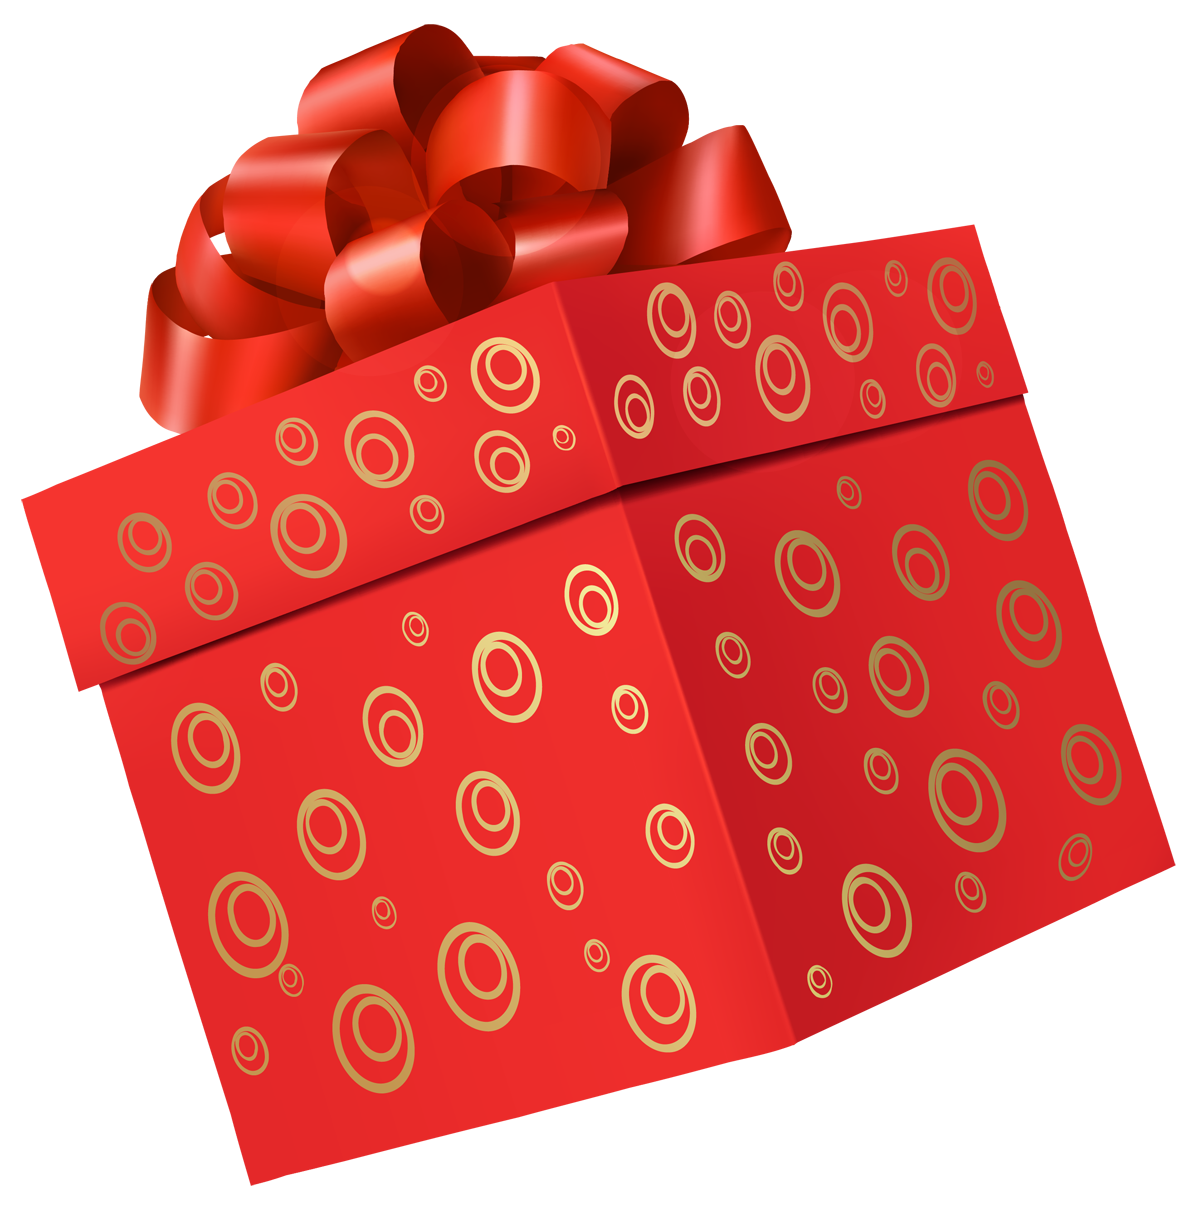 Pic PNG Gift Red Box